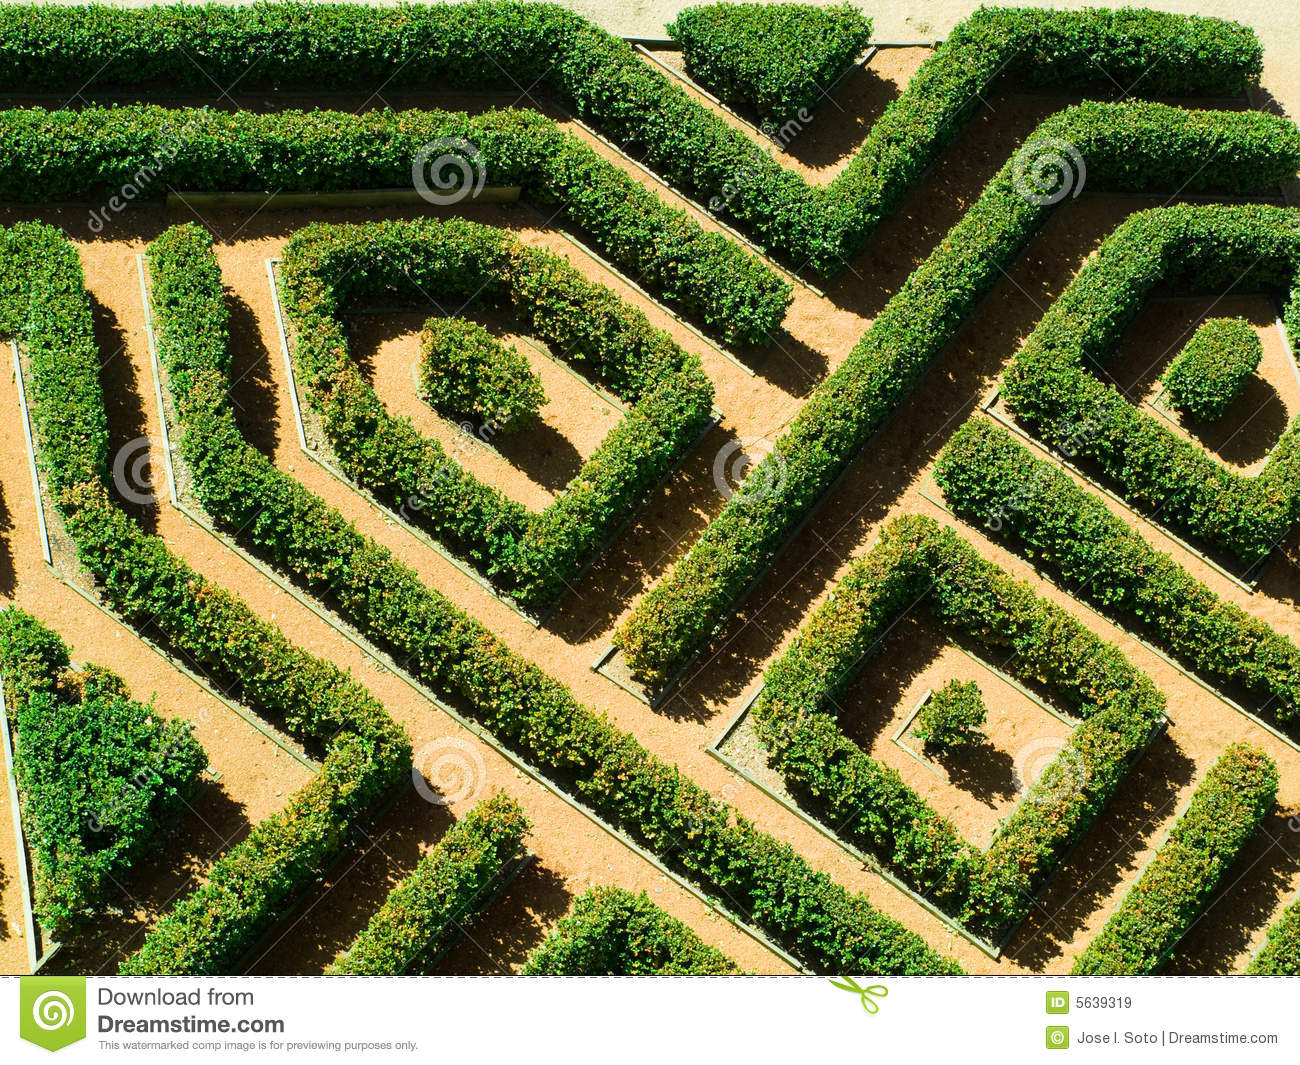 Geometrical garden royalty free stock images image 5639319 for Geometric garden designs